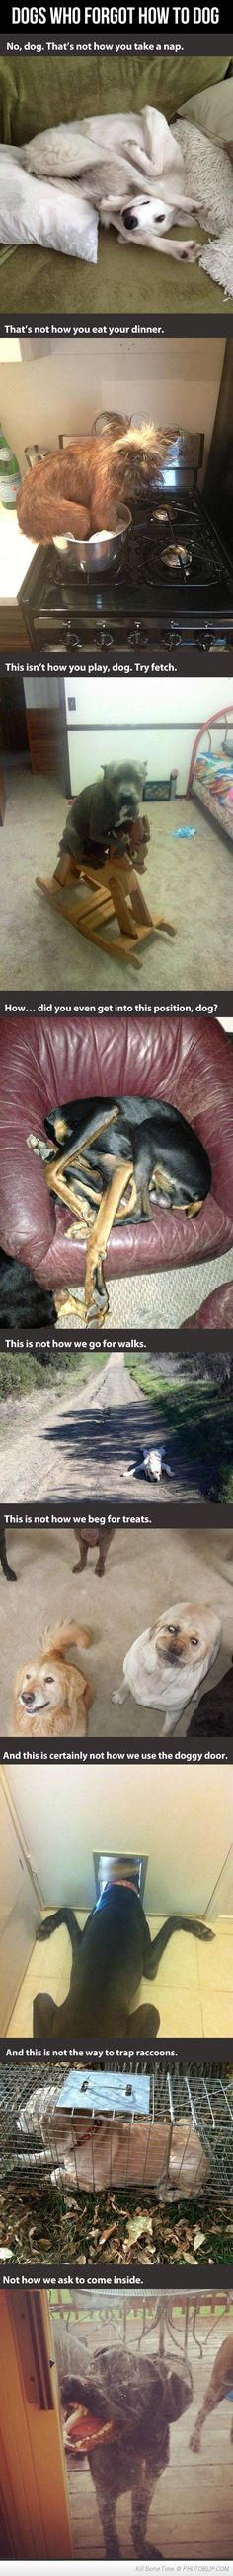 Oh dog, forgot how to dog? :') ...........click here to find out more http://googydog.com